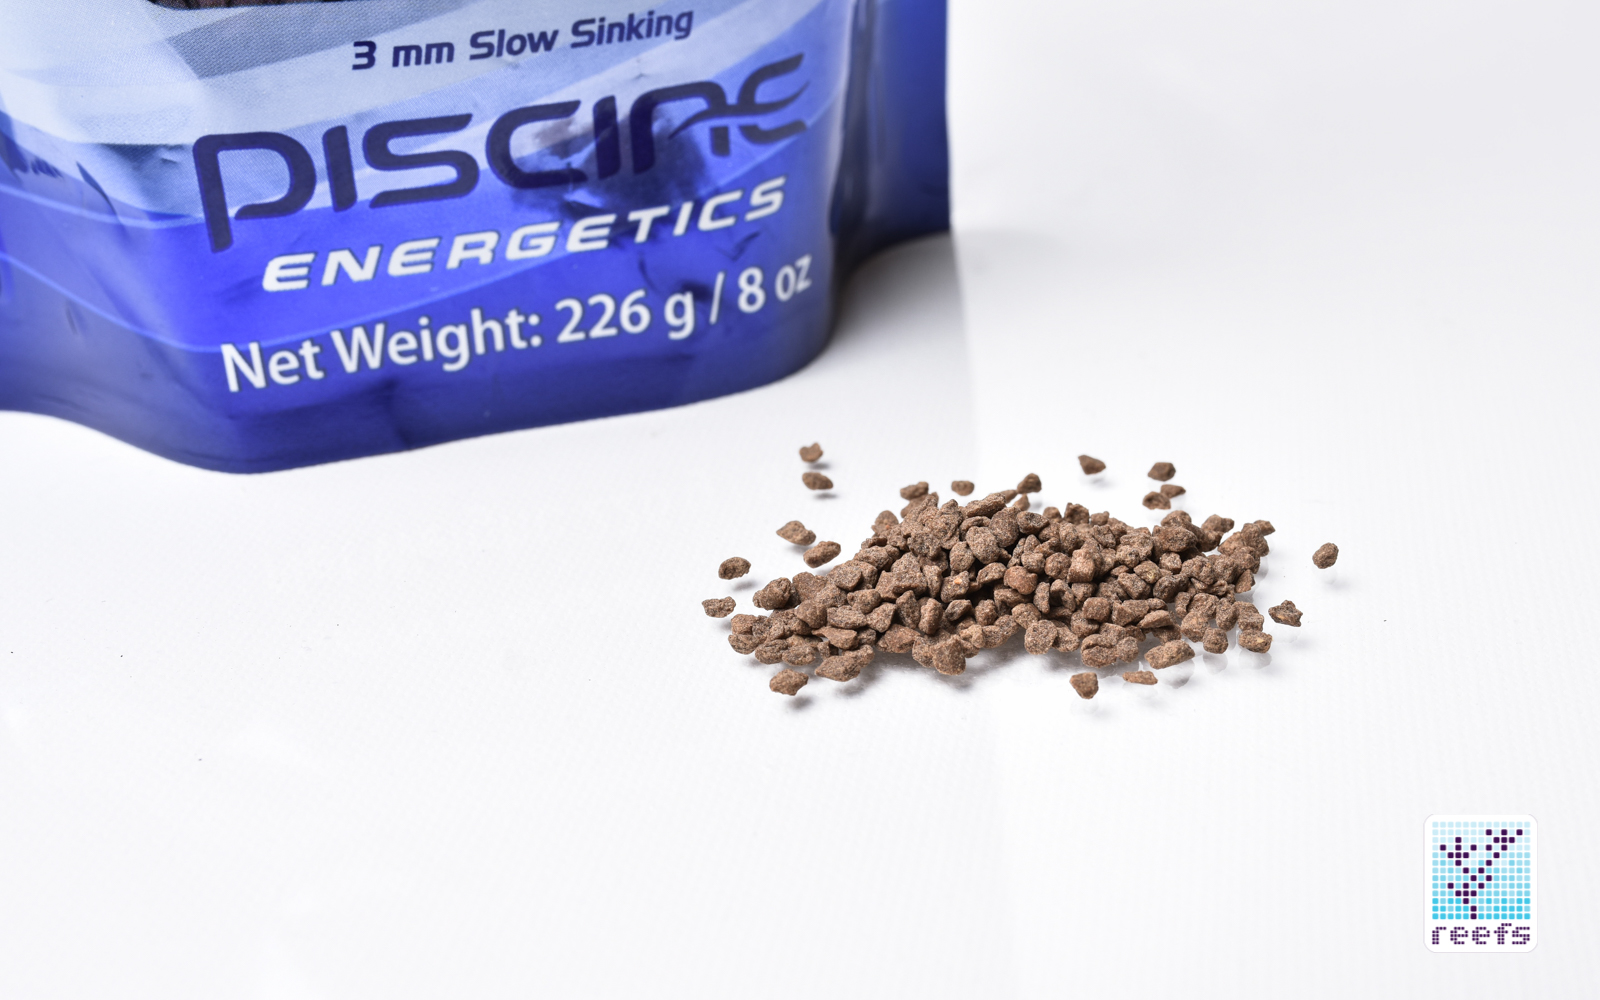 Piscine Energetics Pellets